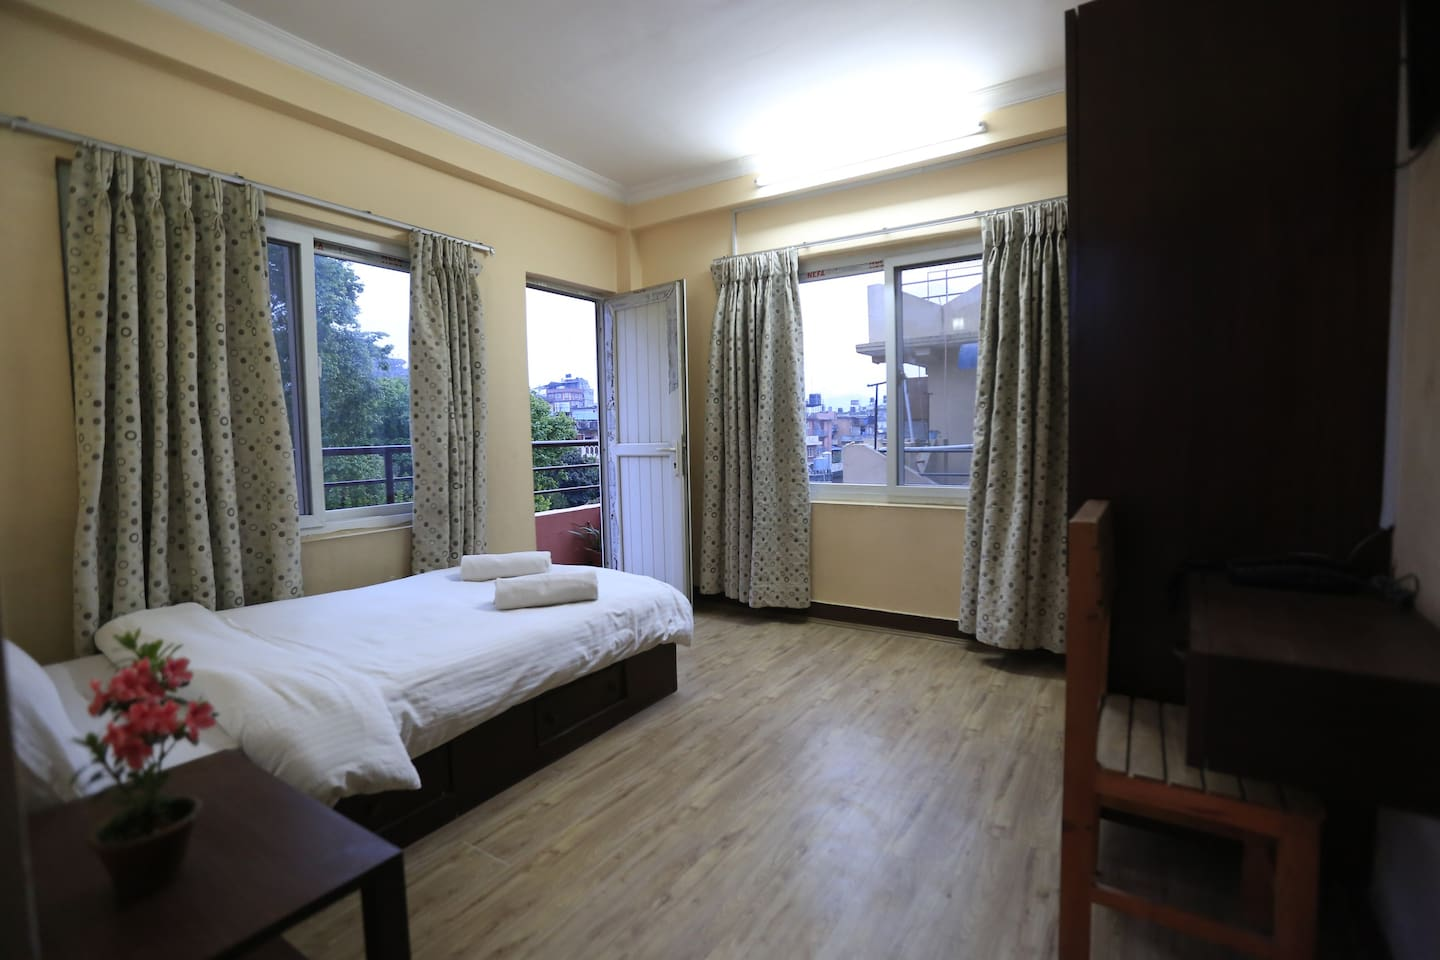 Room 301 Double Bed with private Bathroom /ensuite. Private small verandah/patio.  Large windows for natural light and a fresh breeze.Third Floor with access to a large Patio to enjoy the afternoon sun and look down onto the garden below